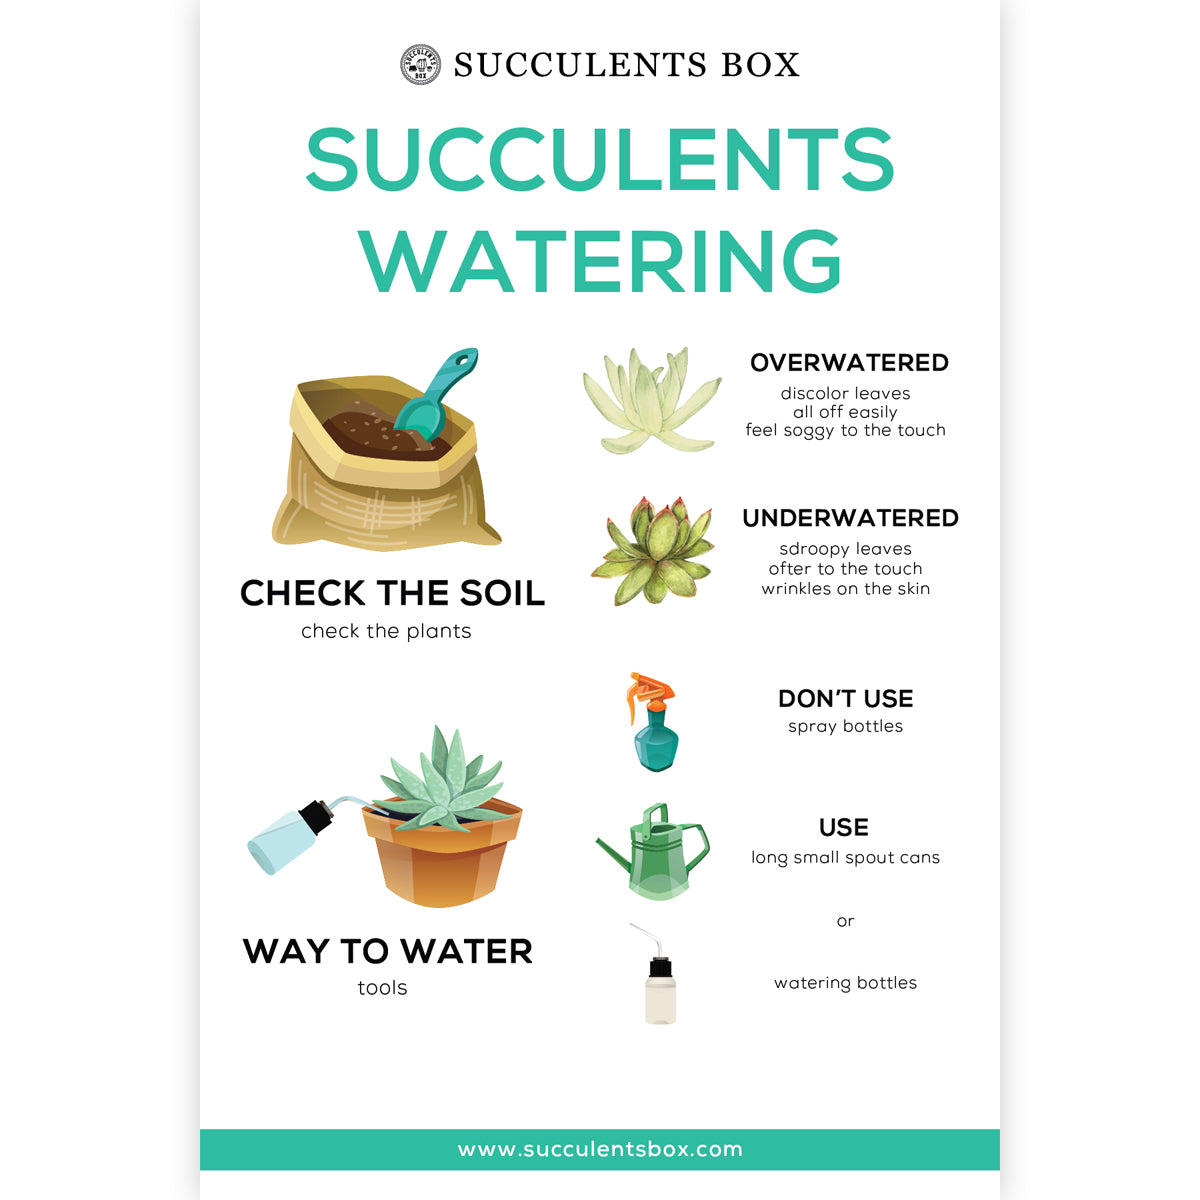 Succulents Watering Care Card for sale, How to water succulent plants, Succulent watering, How to care for succulent plant